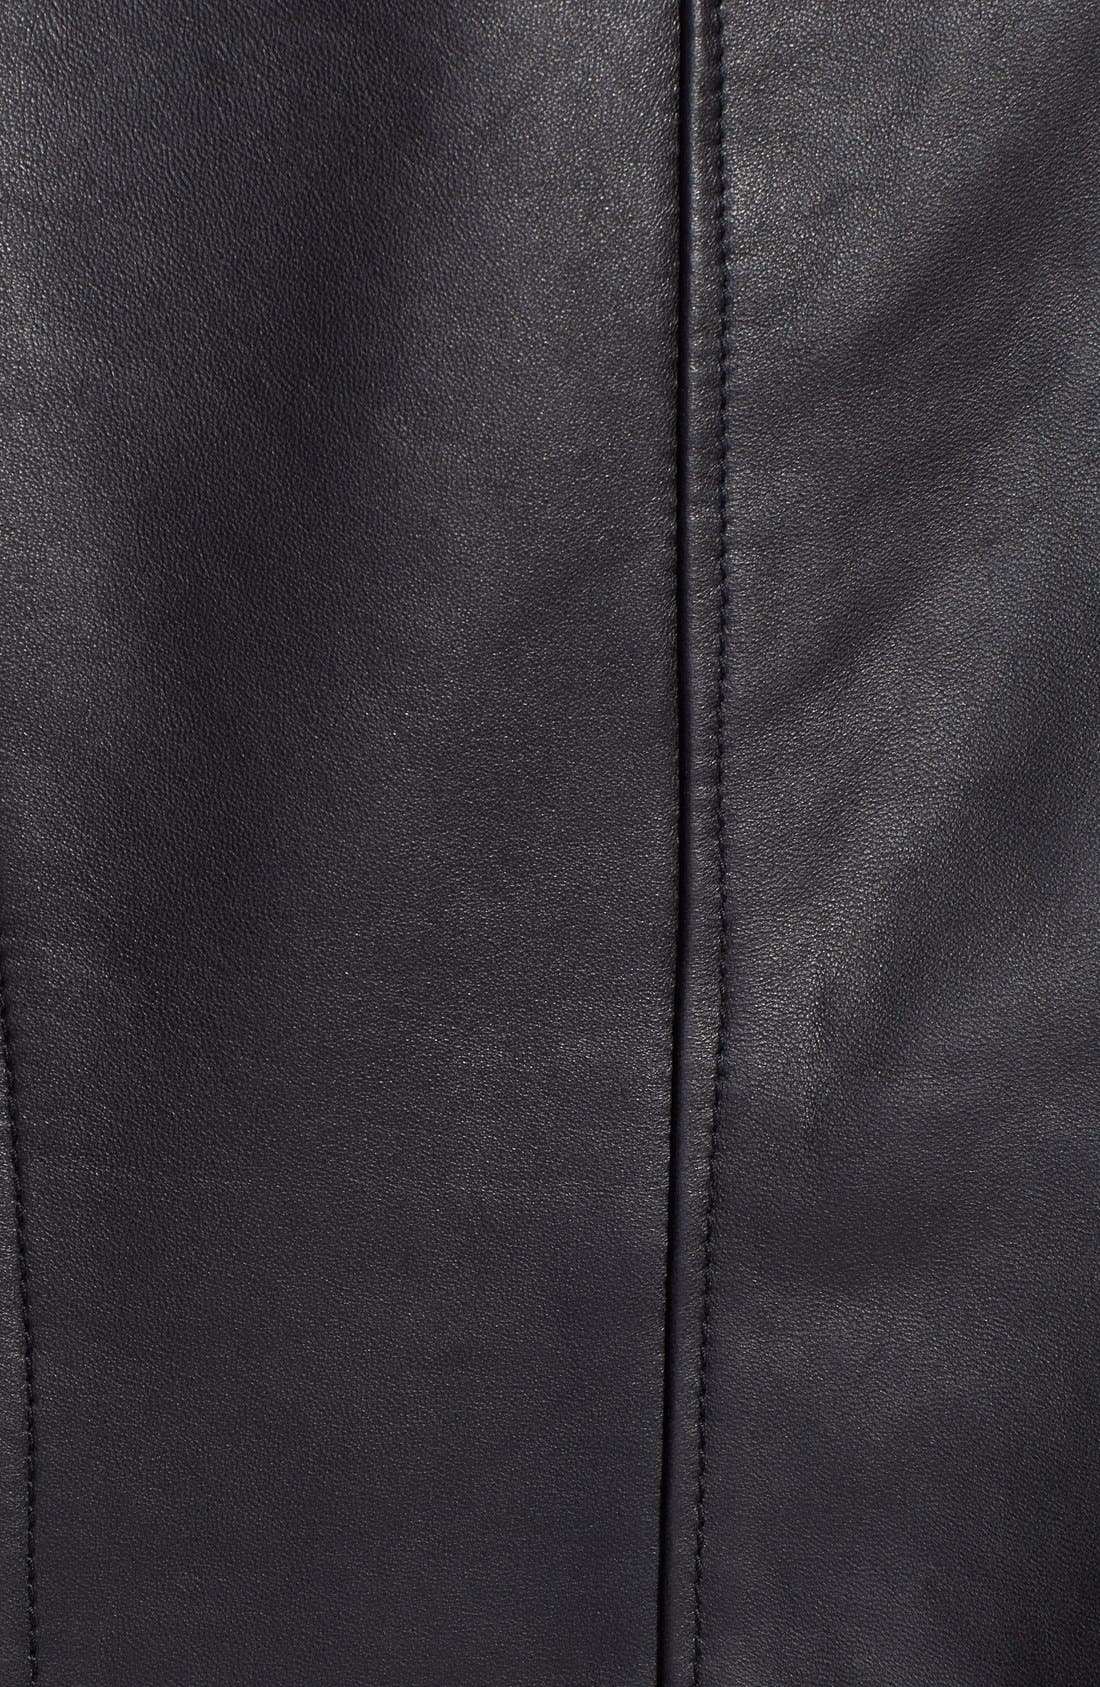 Ruched Side Leather Jacket,                             Alternate thumbnail 2, color,                             001